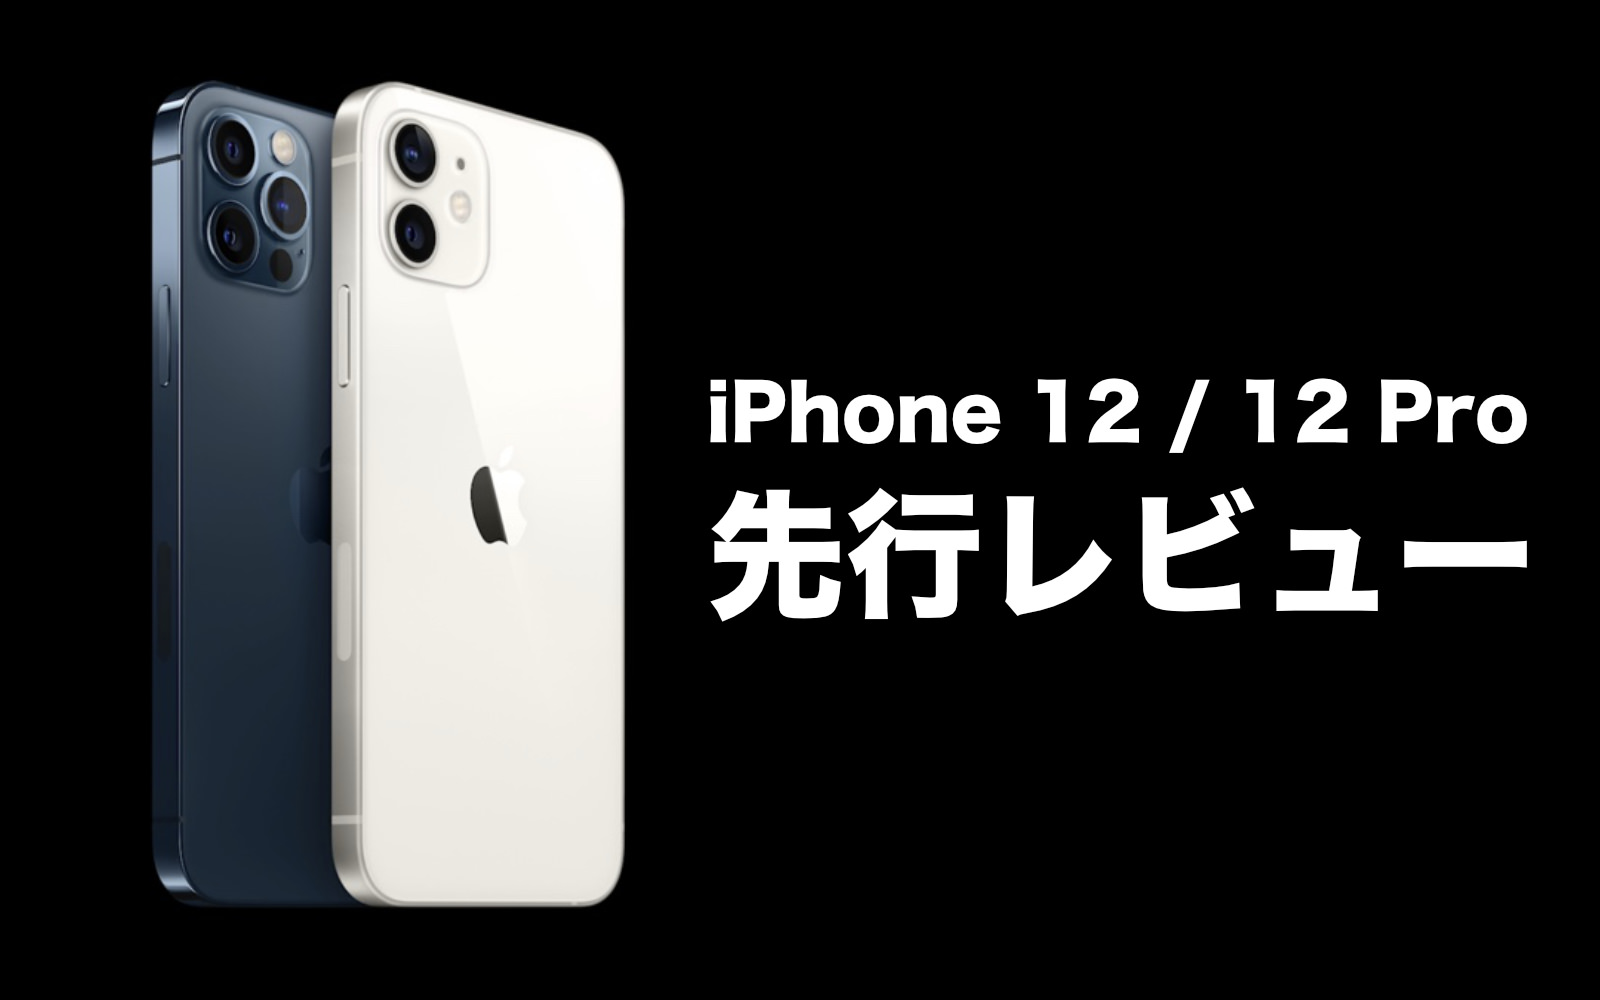 iphone-12-12pro-firsthand-reviews.jpg